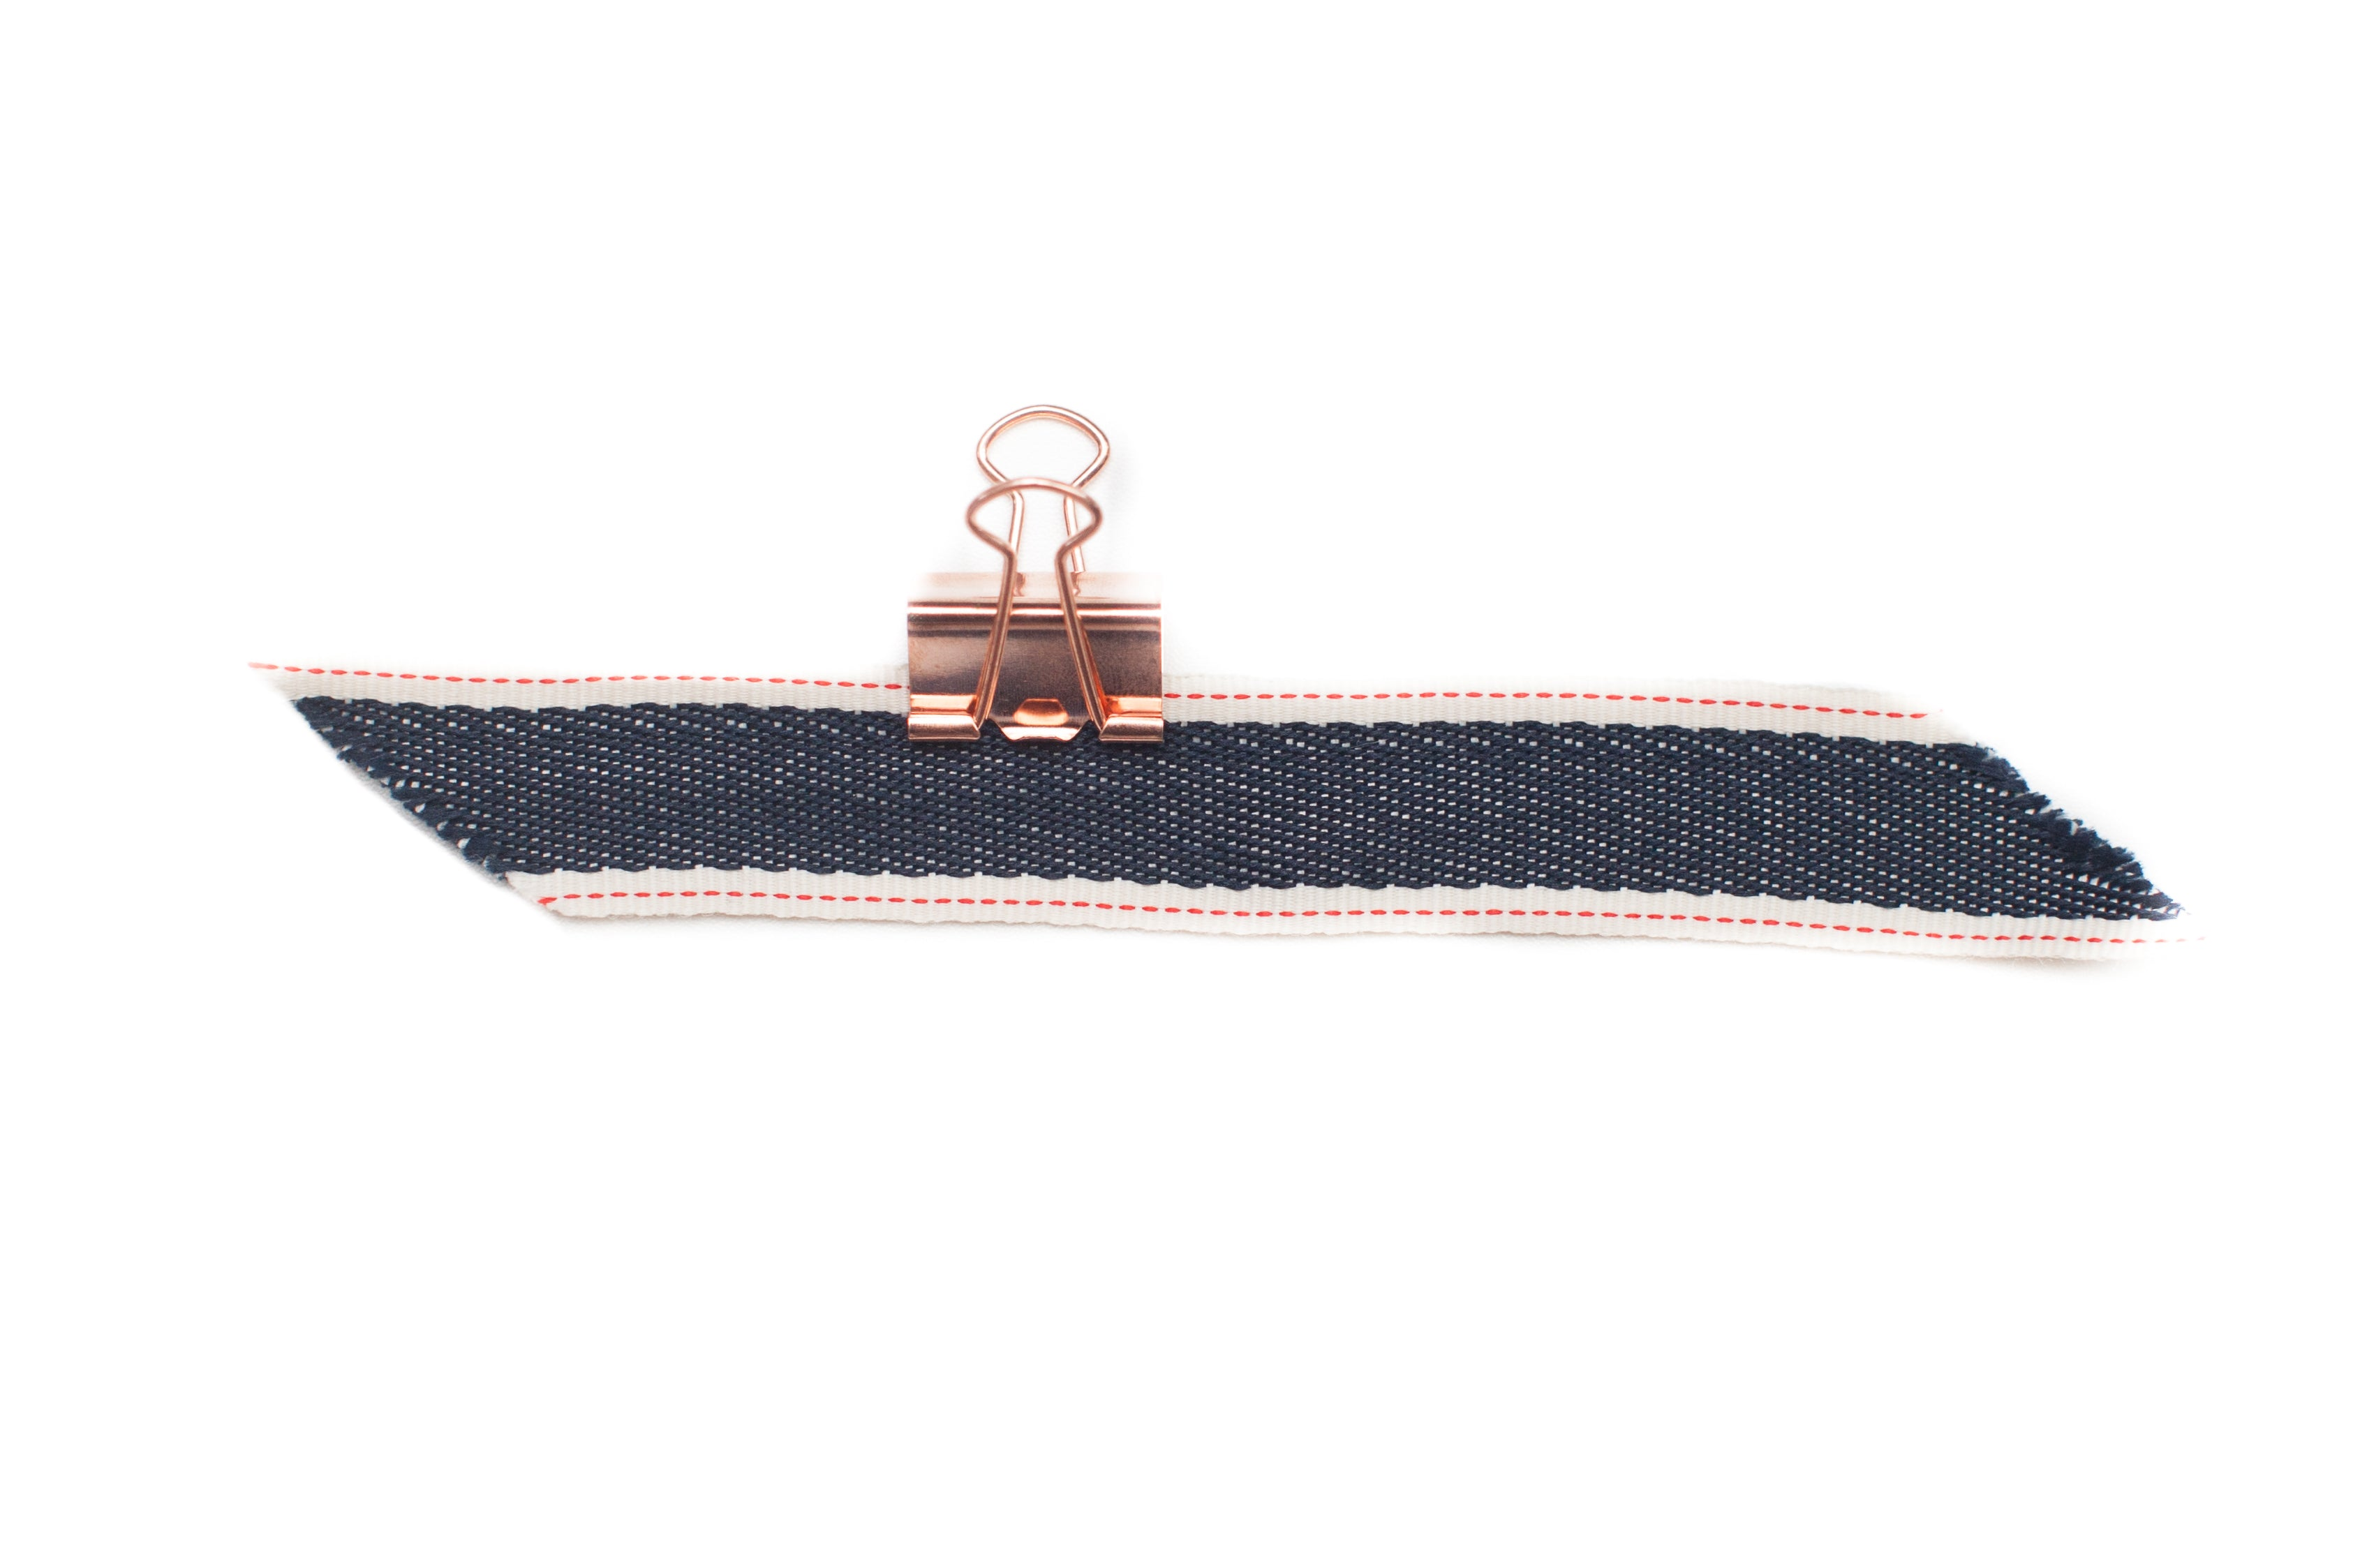 Selvedge Denim Trim - 1""